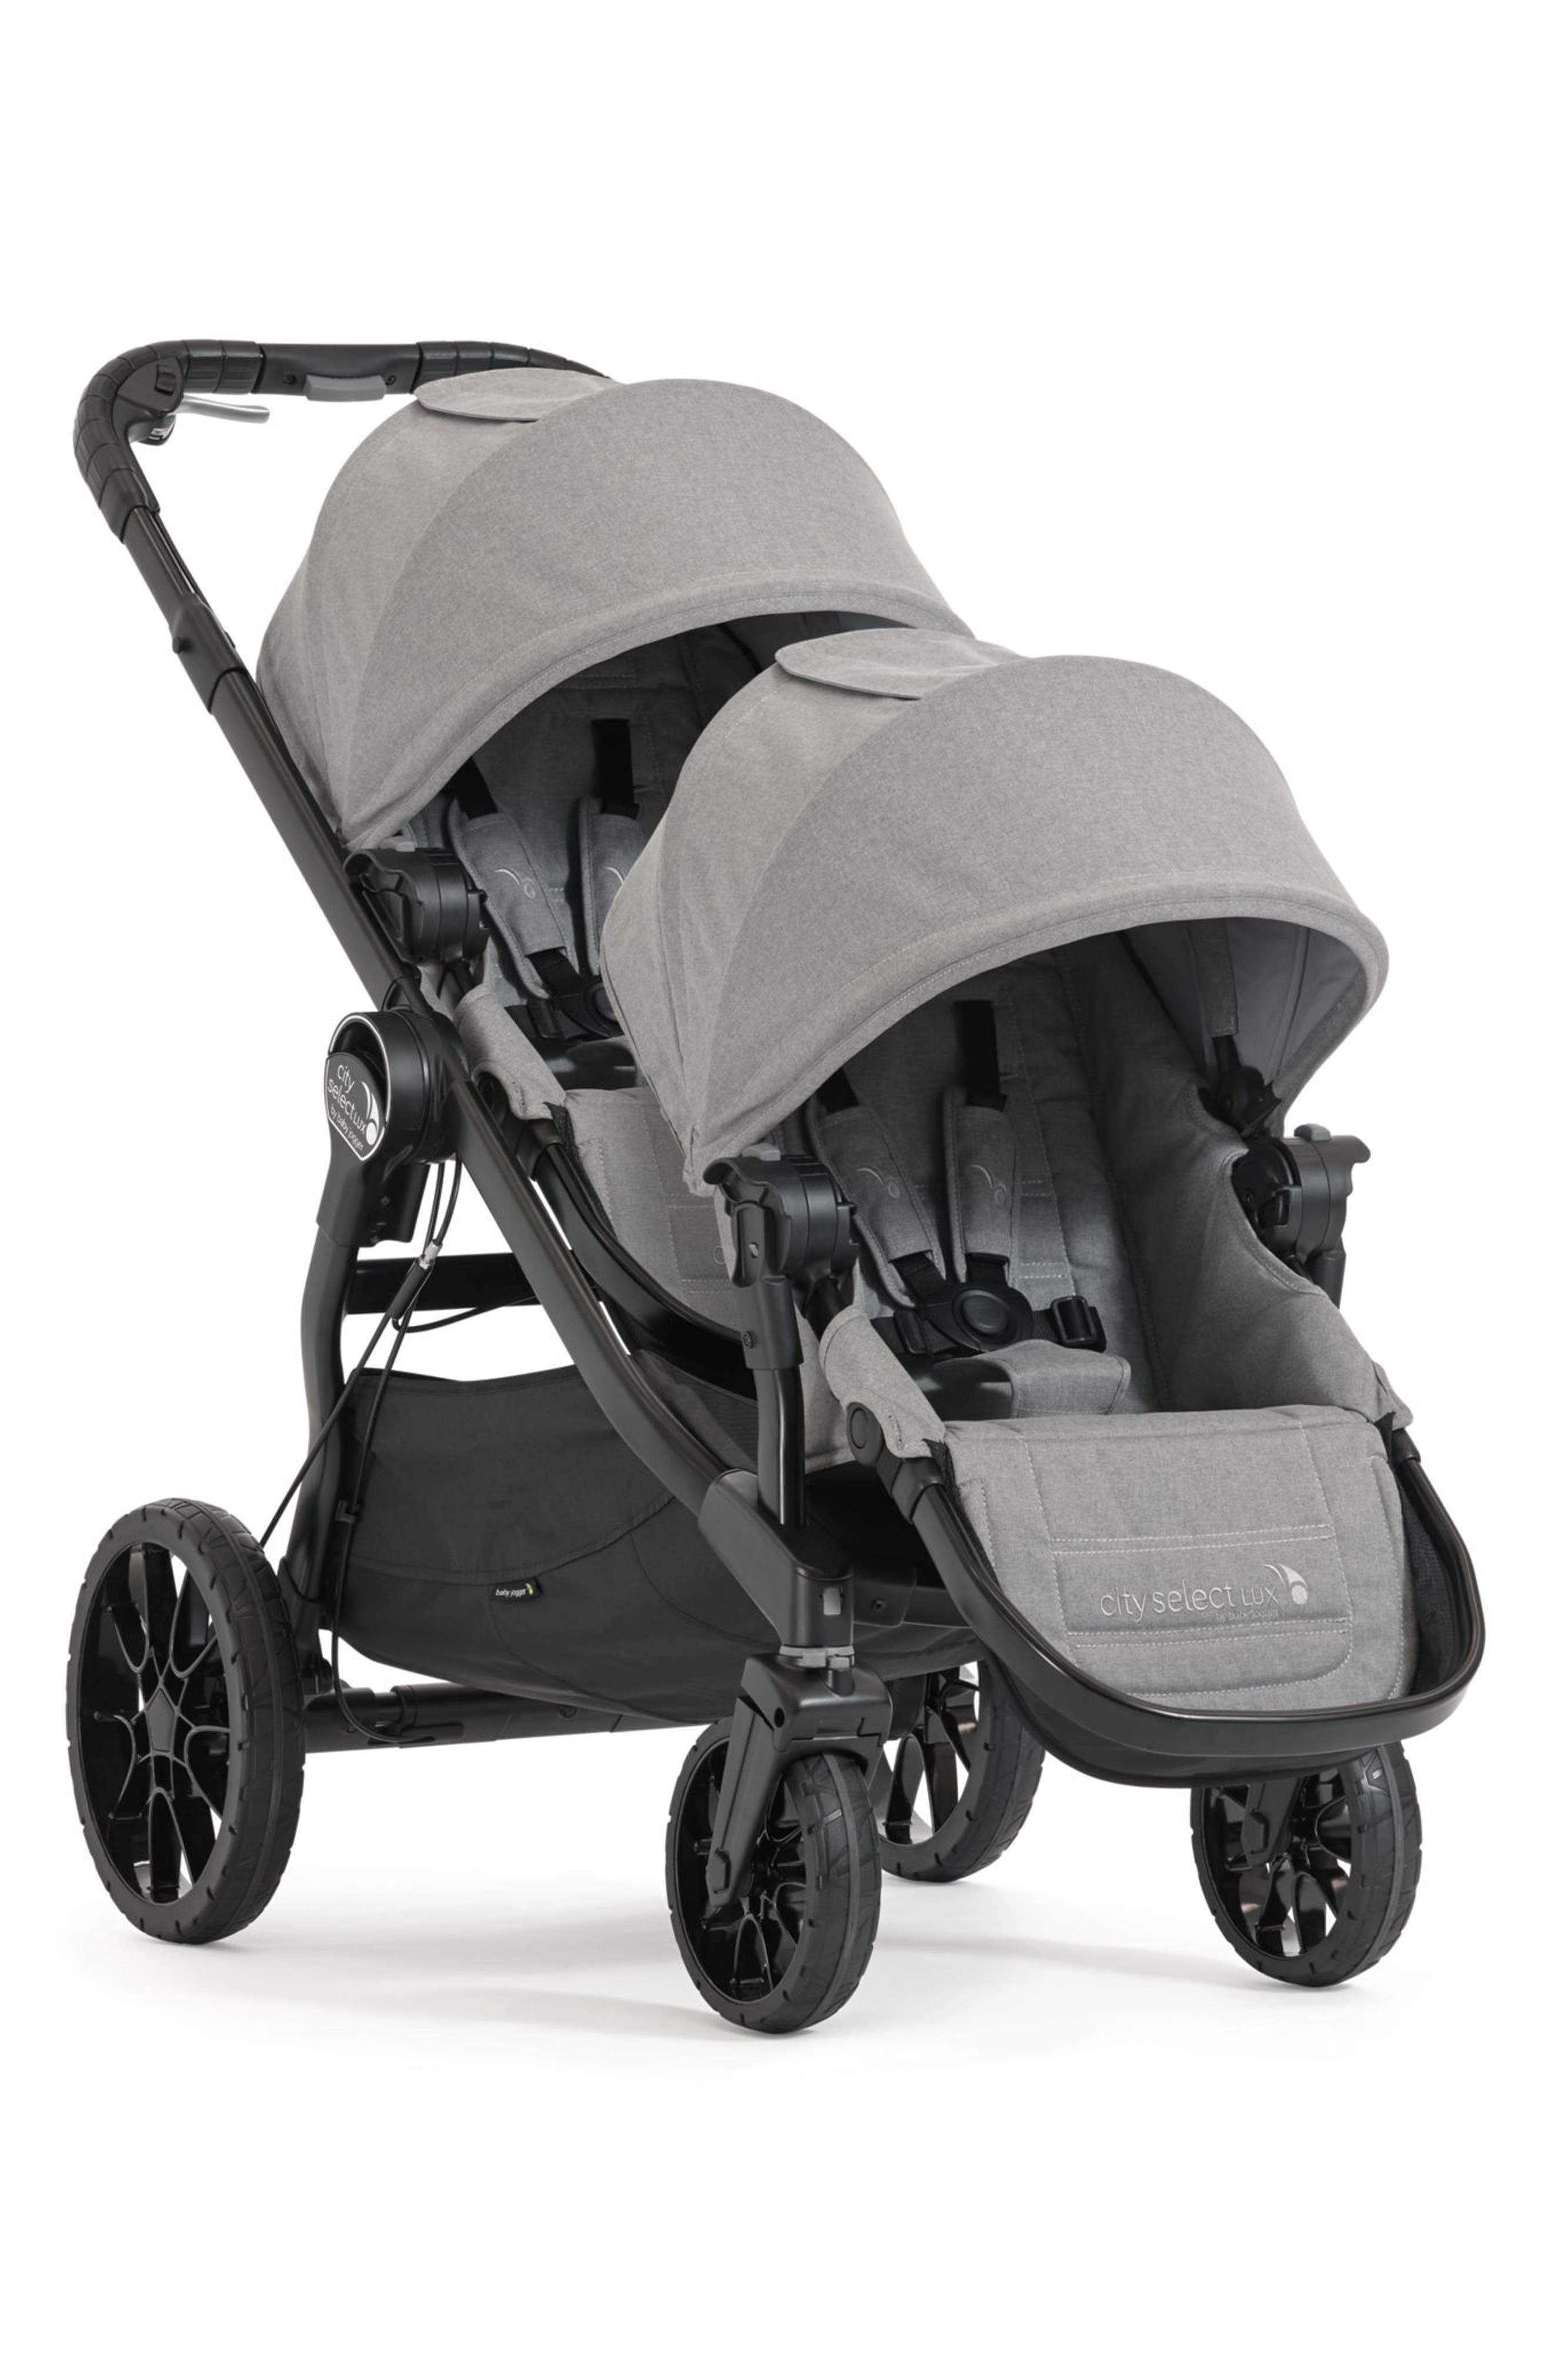 Main Image - Baby Jogger Second Seat for City Select LUX Stroller